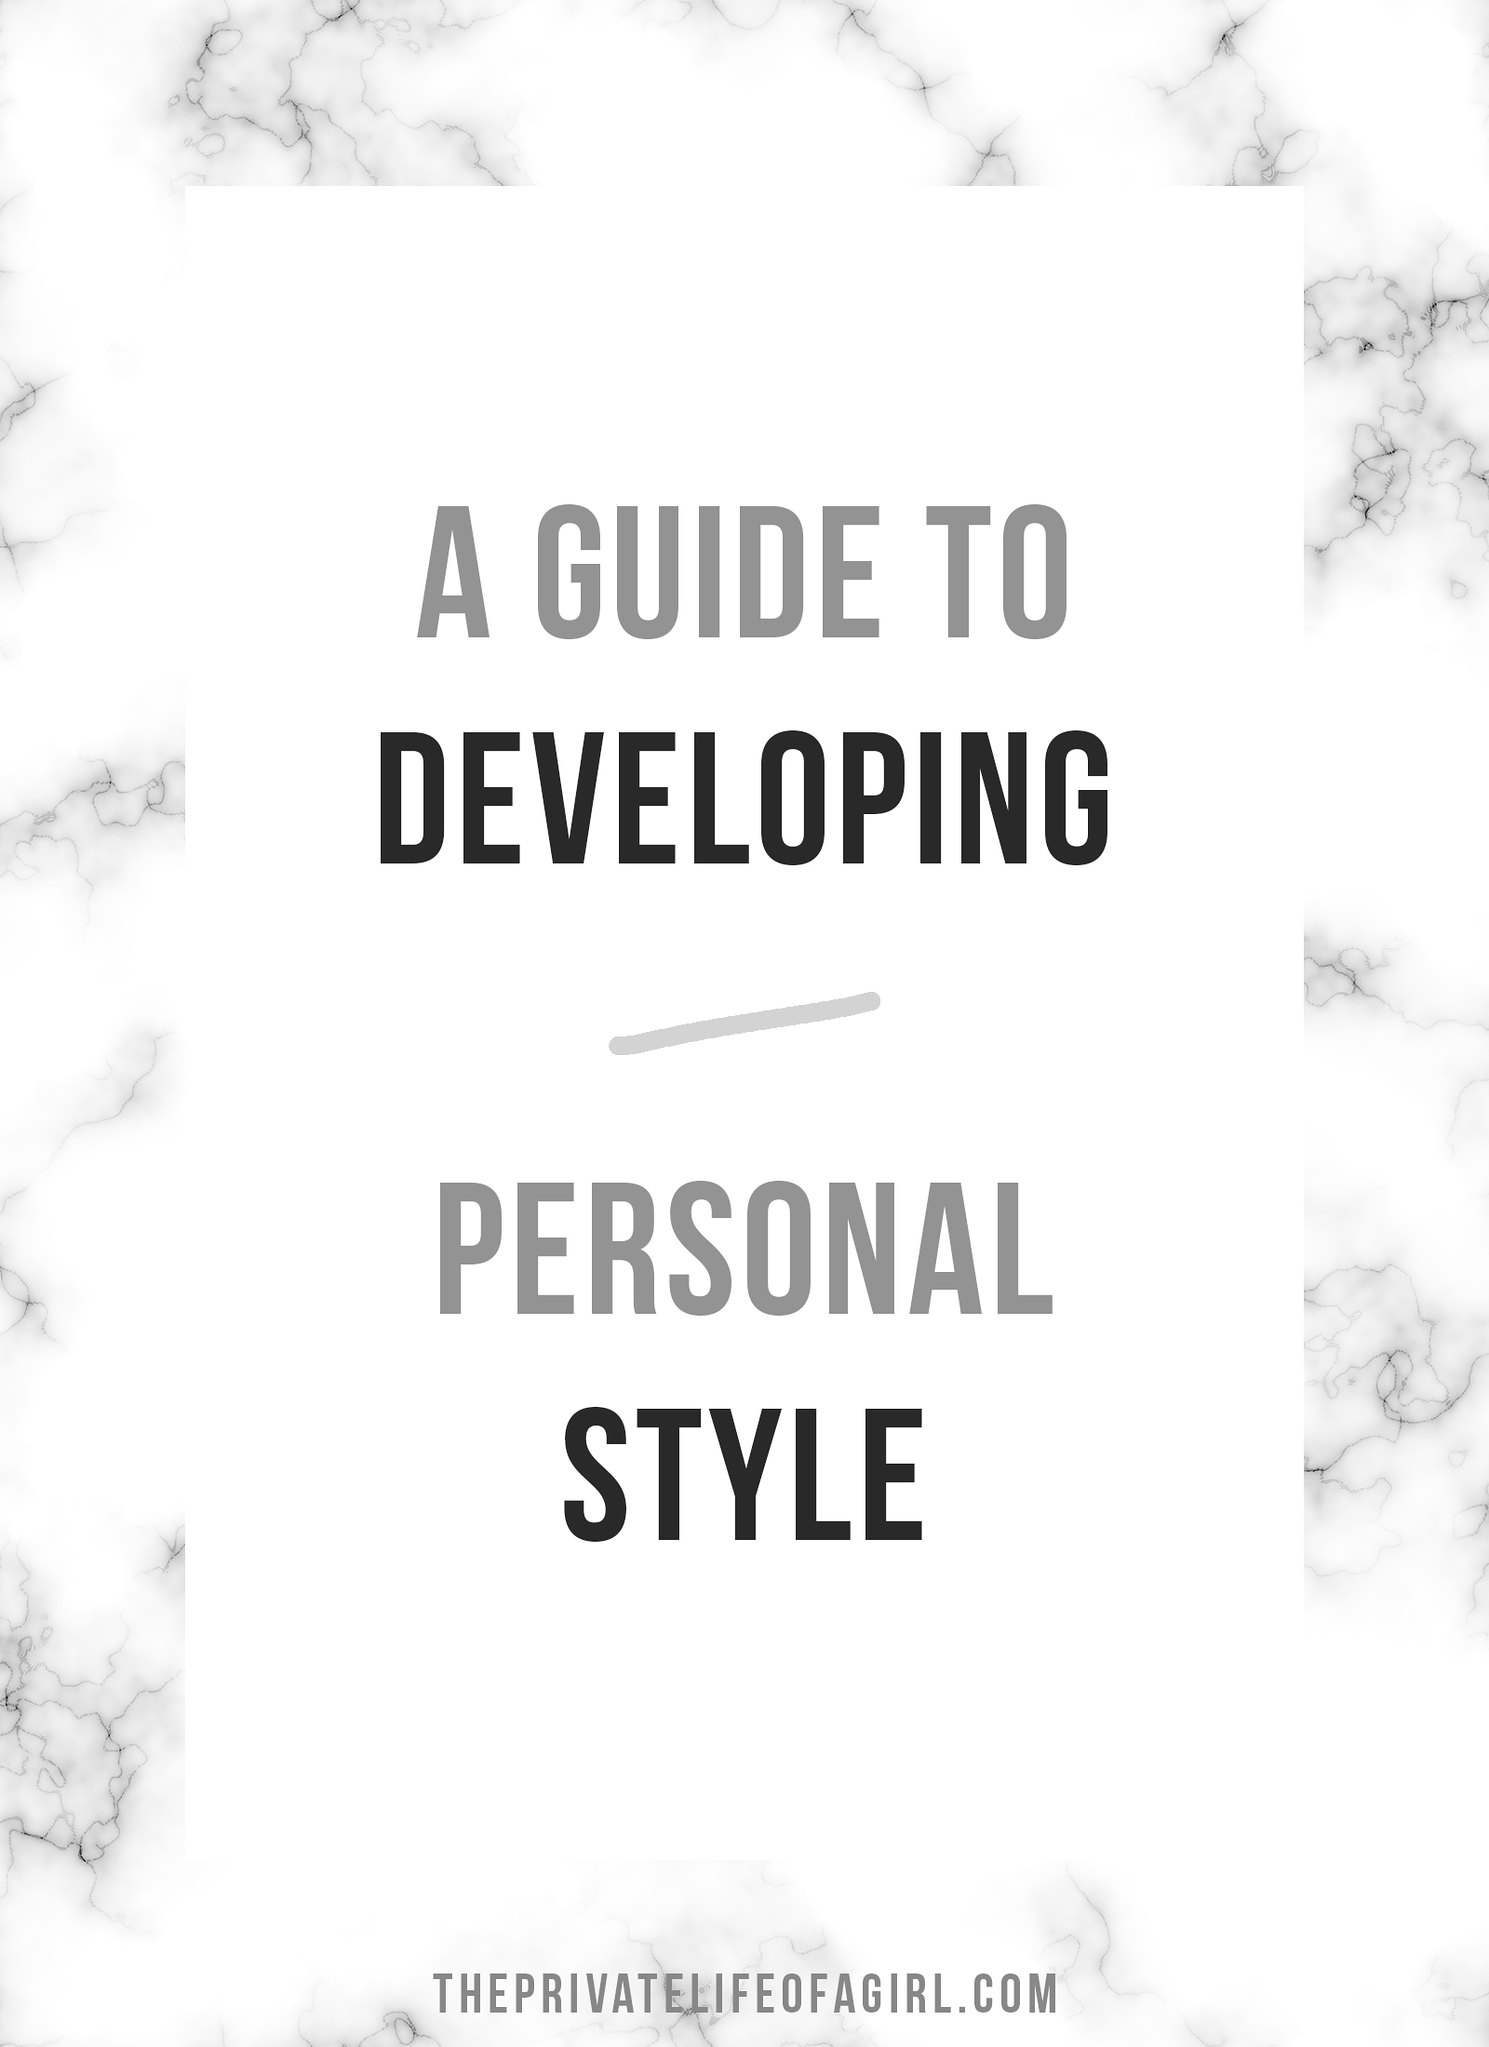 Developing Personal Style